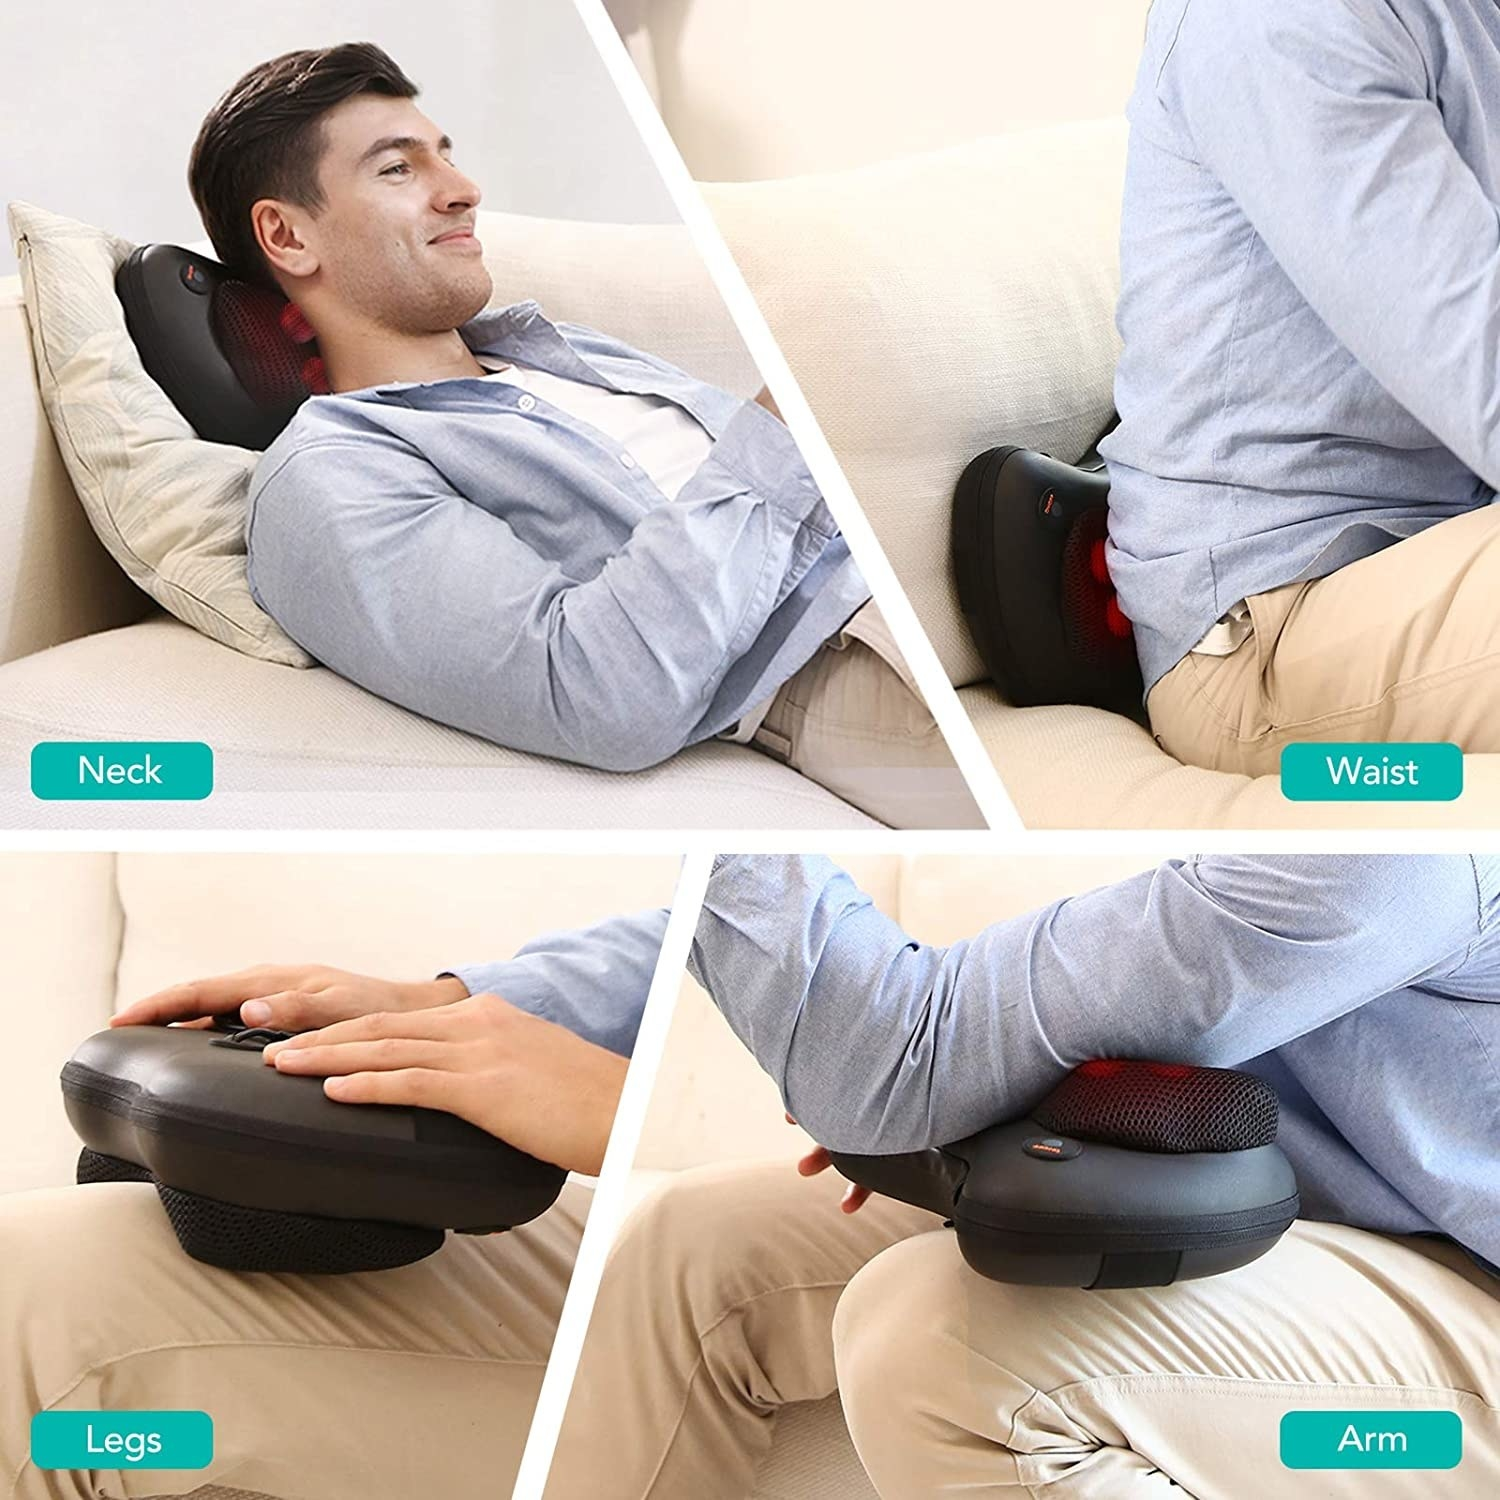 The massager can be used on the neck, back, legs, and arms